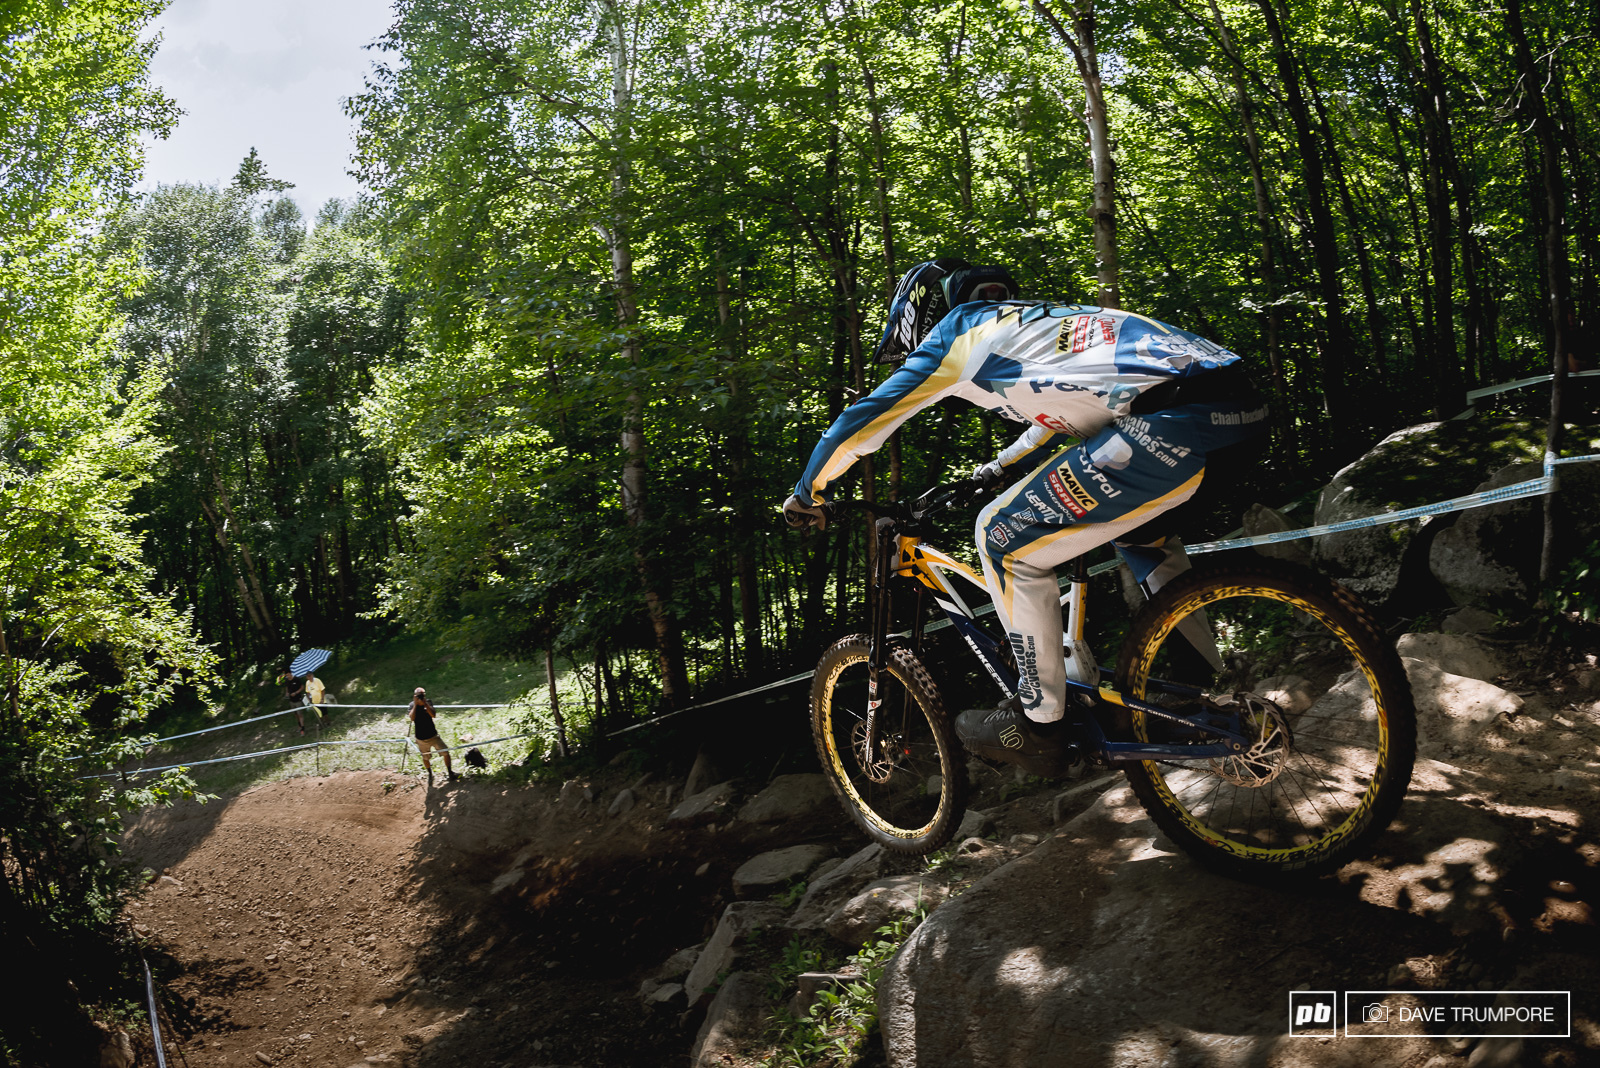 Sam Hill has is one of the winningest riders here at Mont St Anne most recently World Champs in 2010 and the WC in 2014.